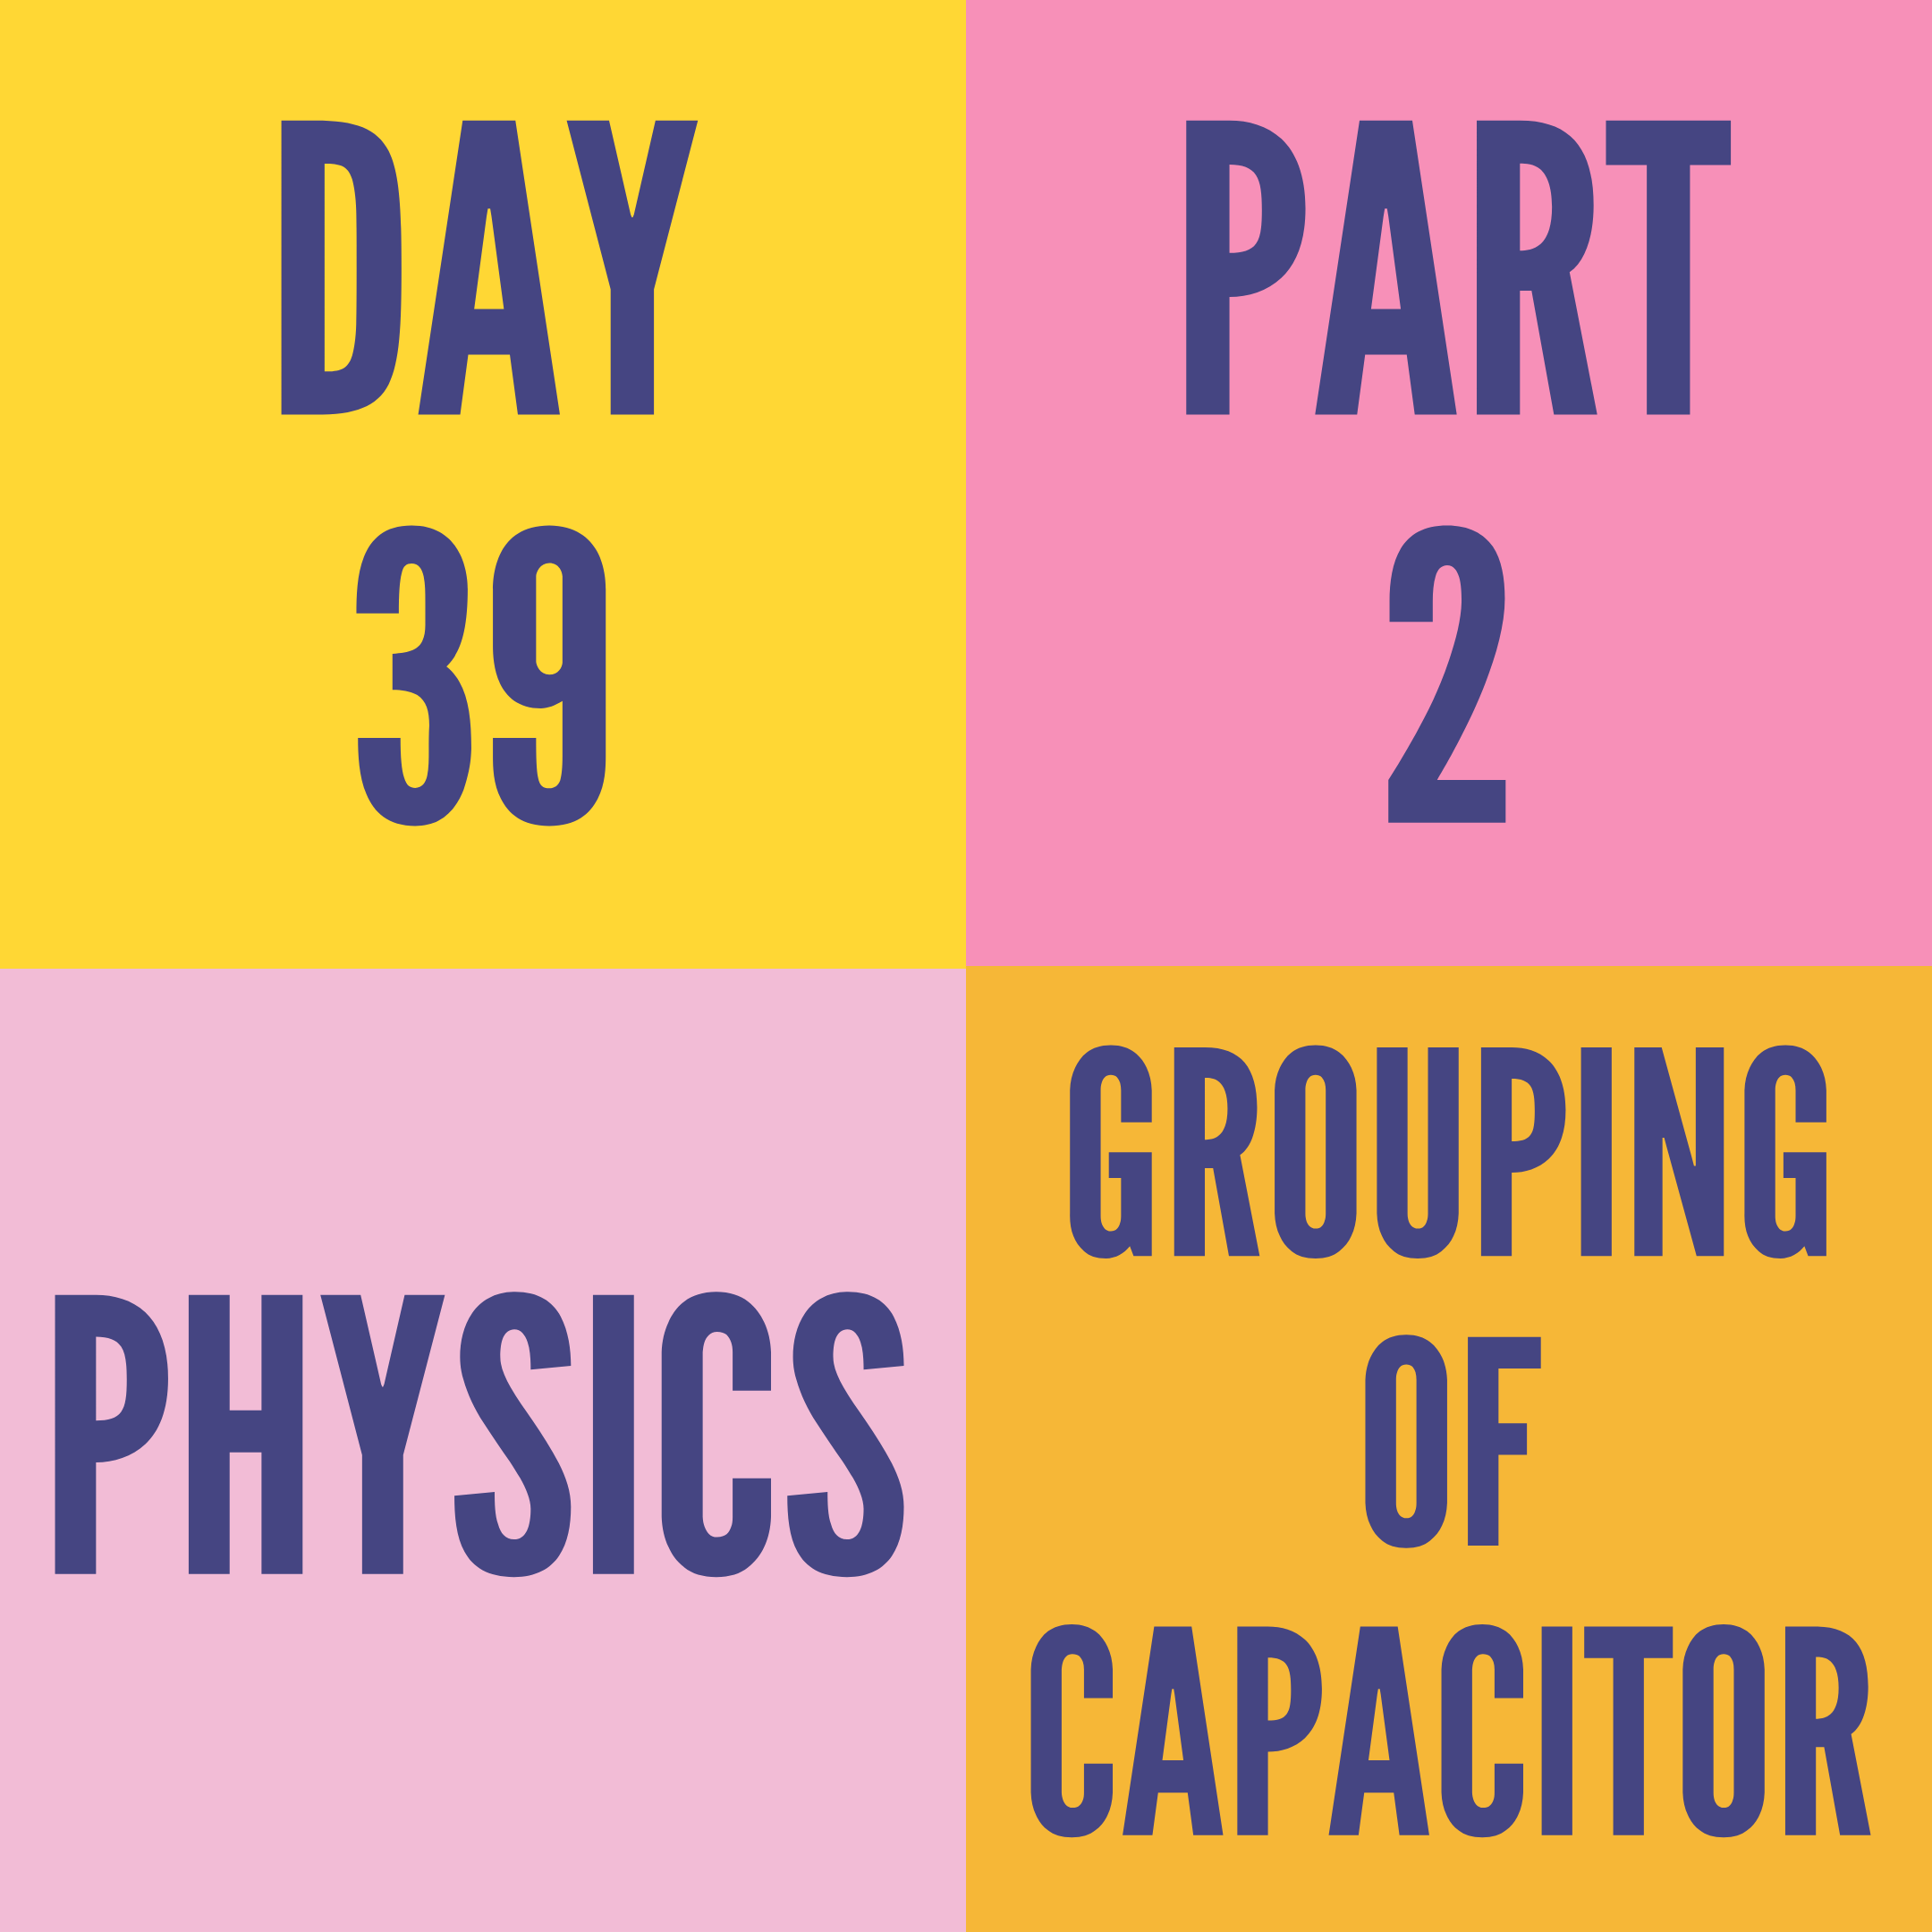 DAY-39 PART-2 GROUPING OF CAPACITOR